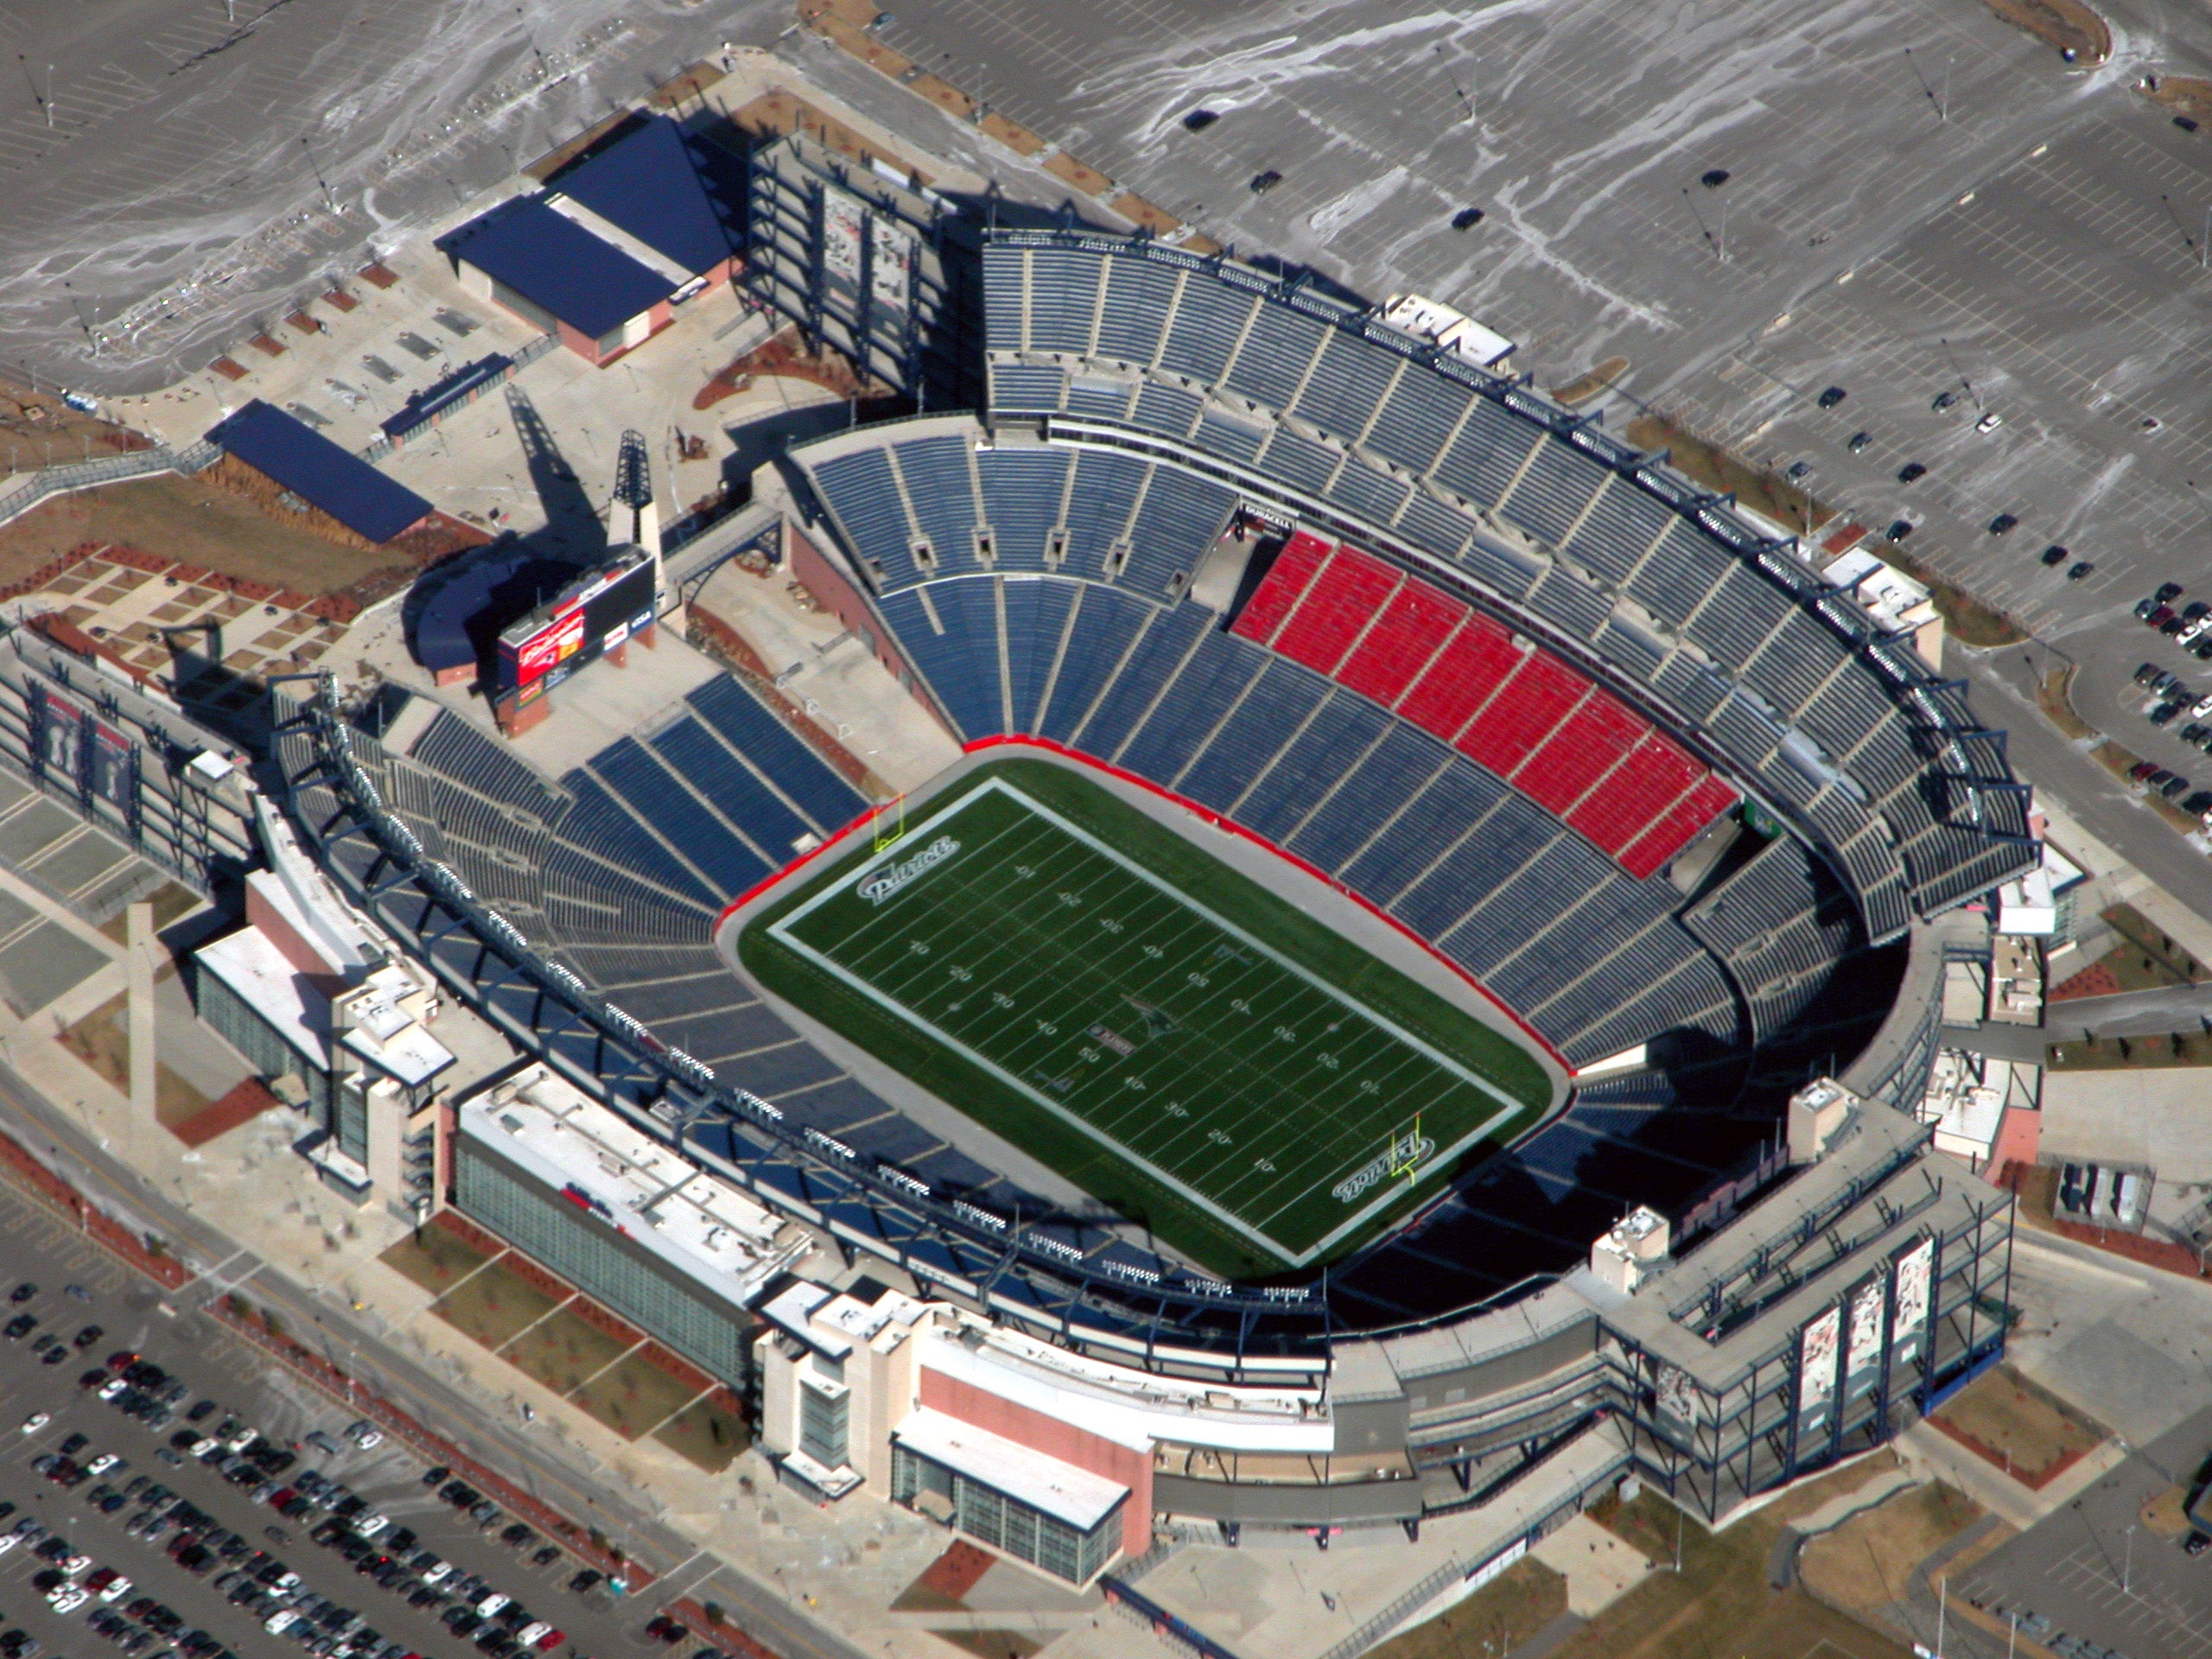 Gillette stadium pictures for sale — 1